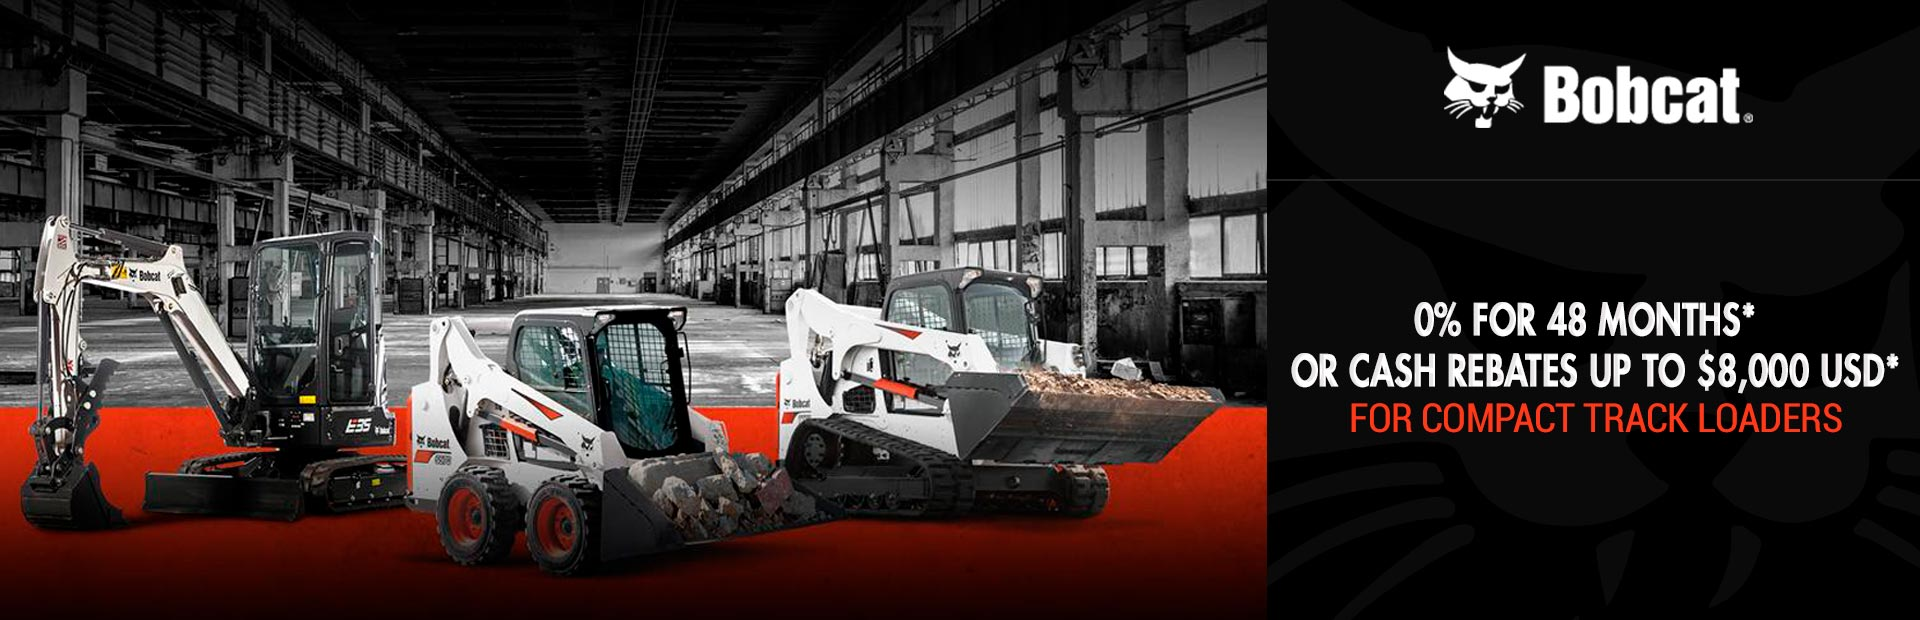 Bobcat: Compact Track Loaders